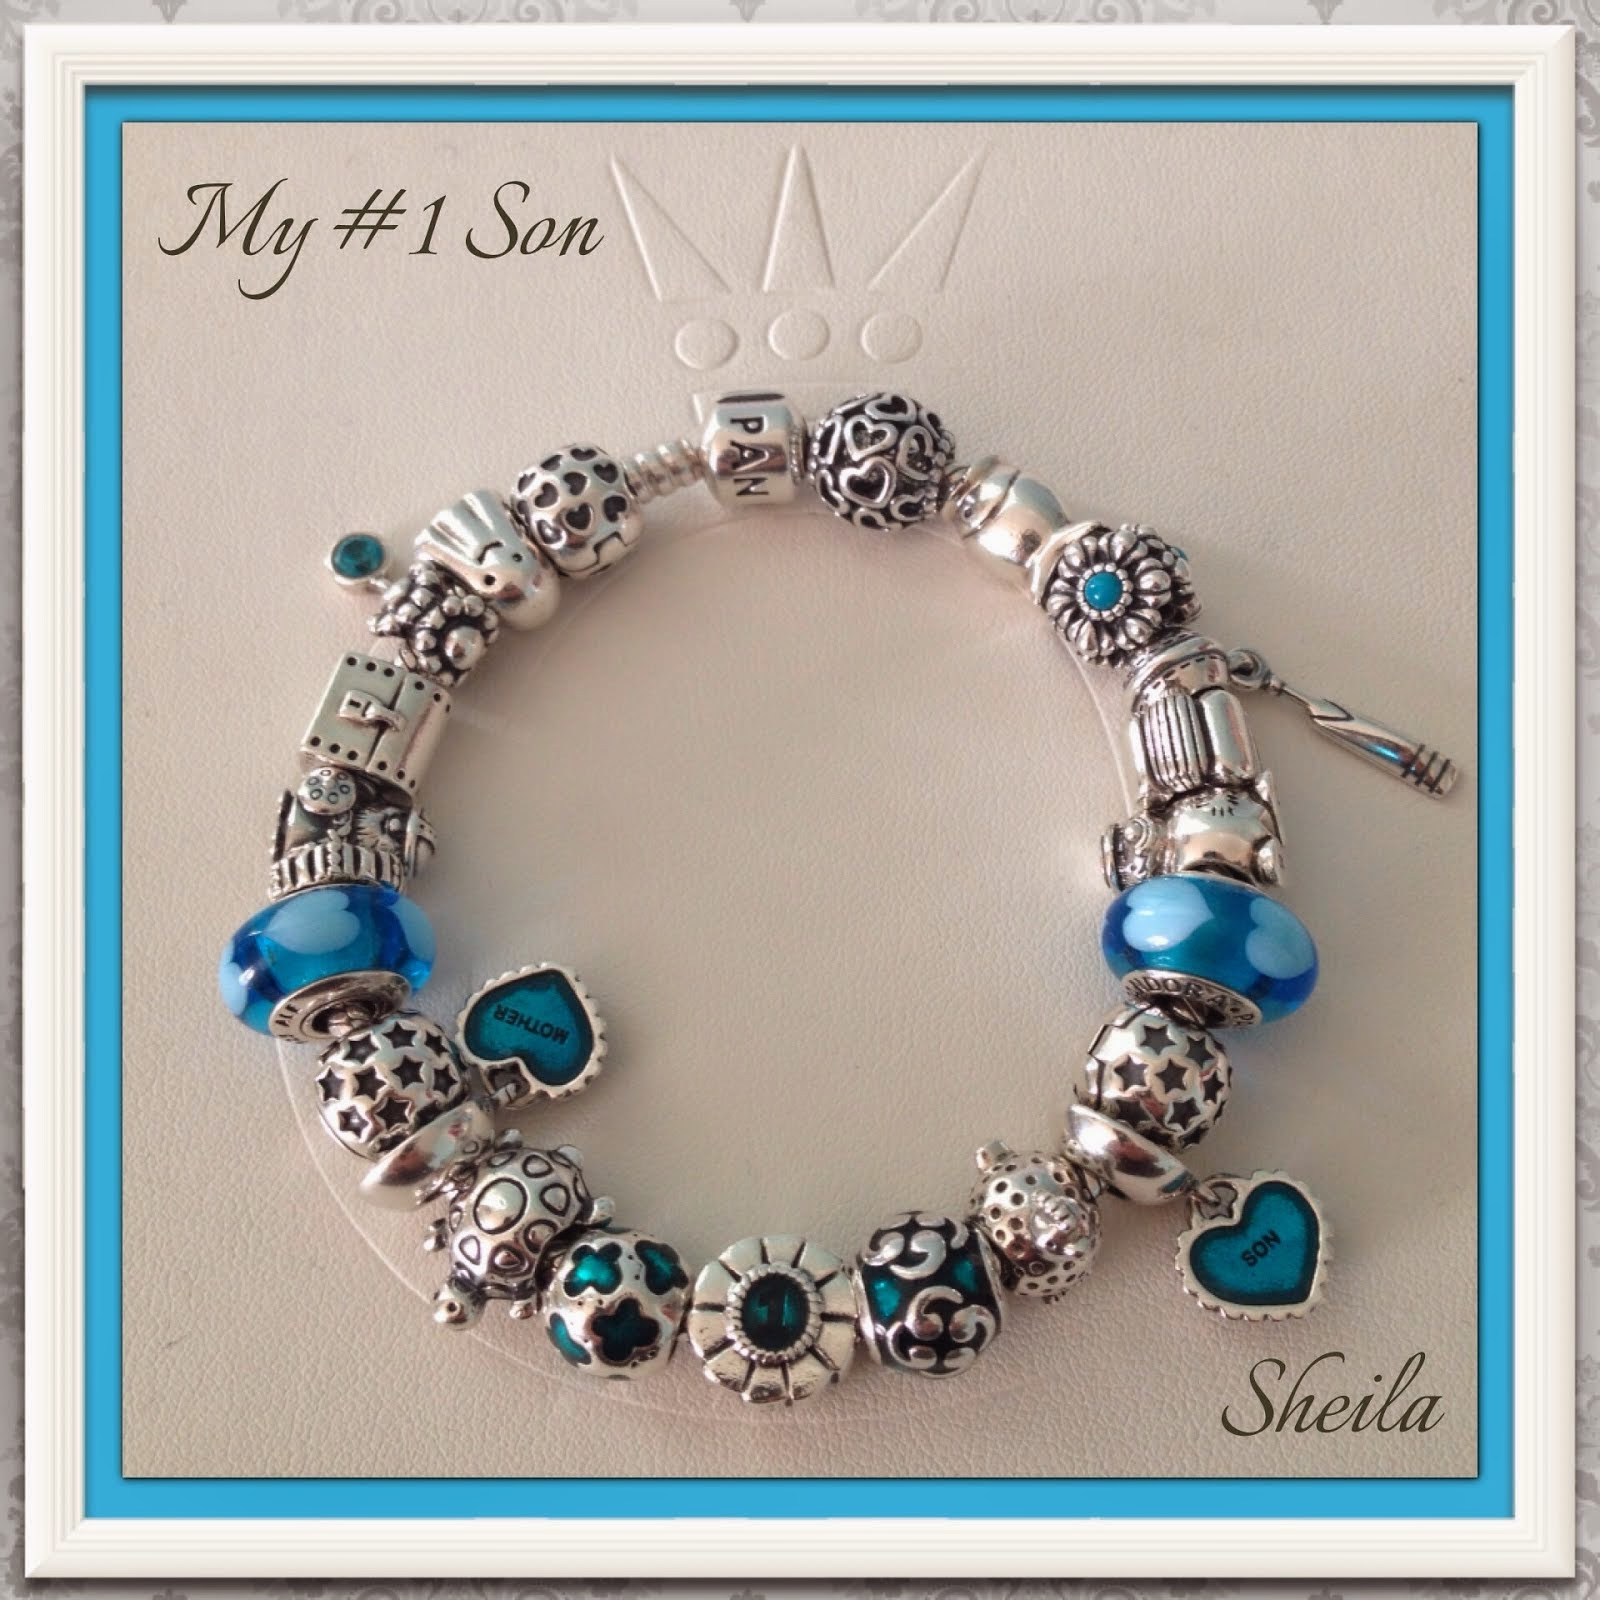 is dream charms makes heart your pin pandora wish bracelet a bangles bangle